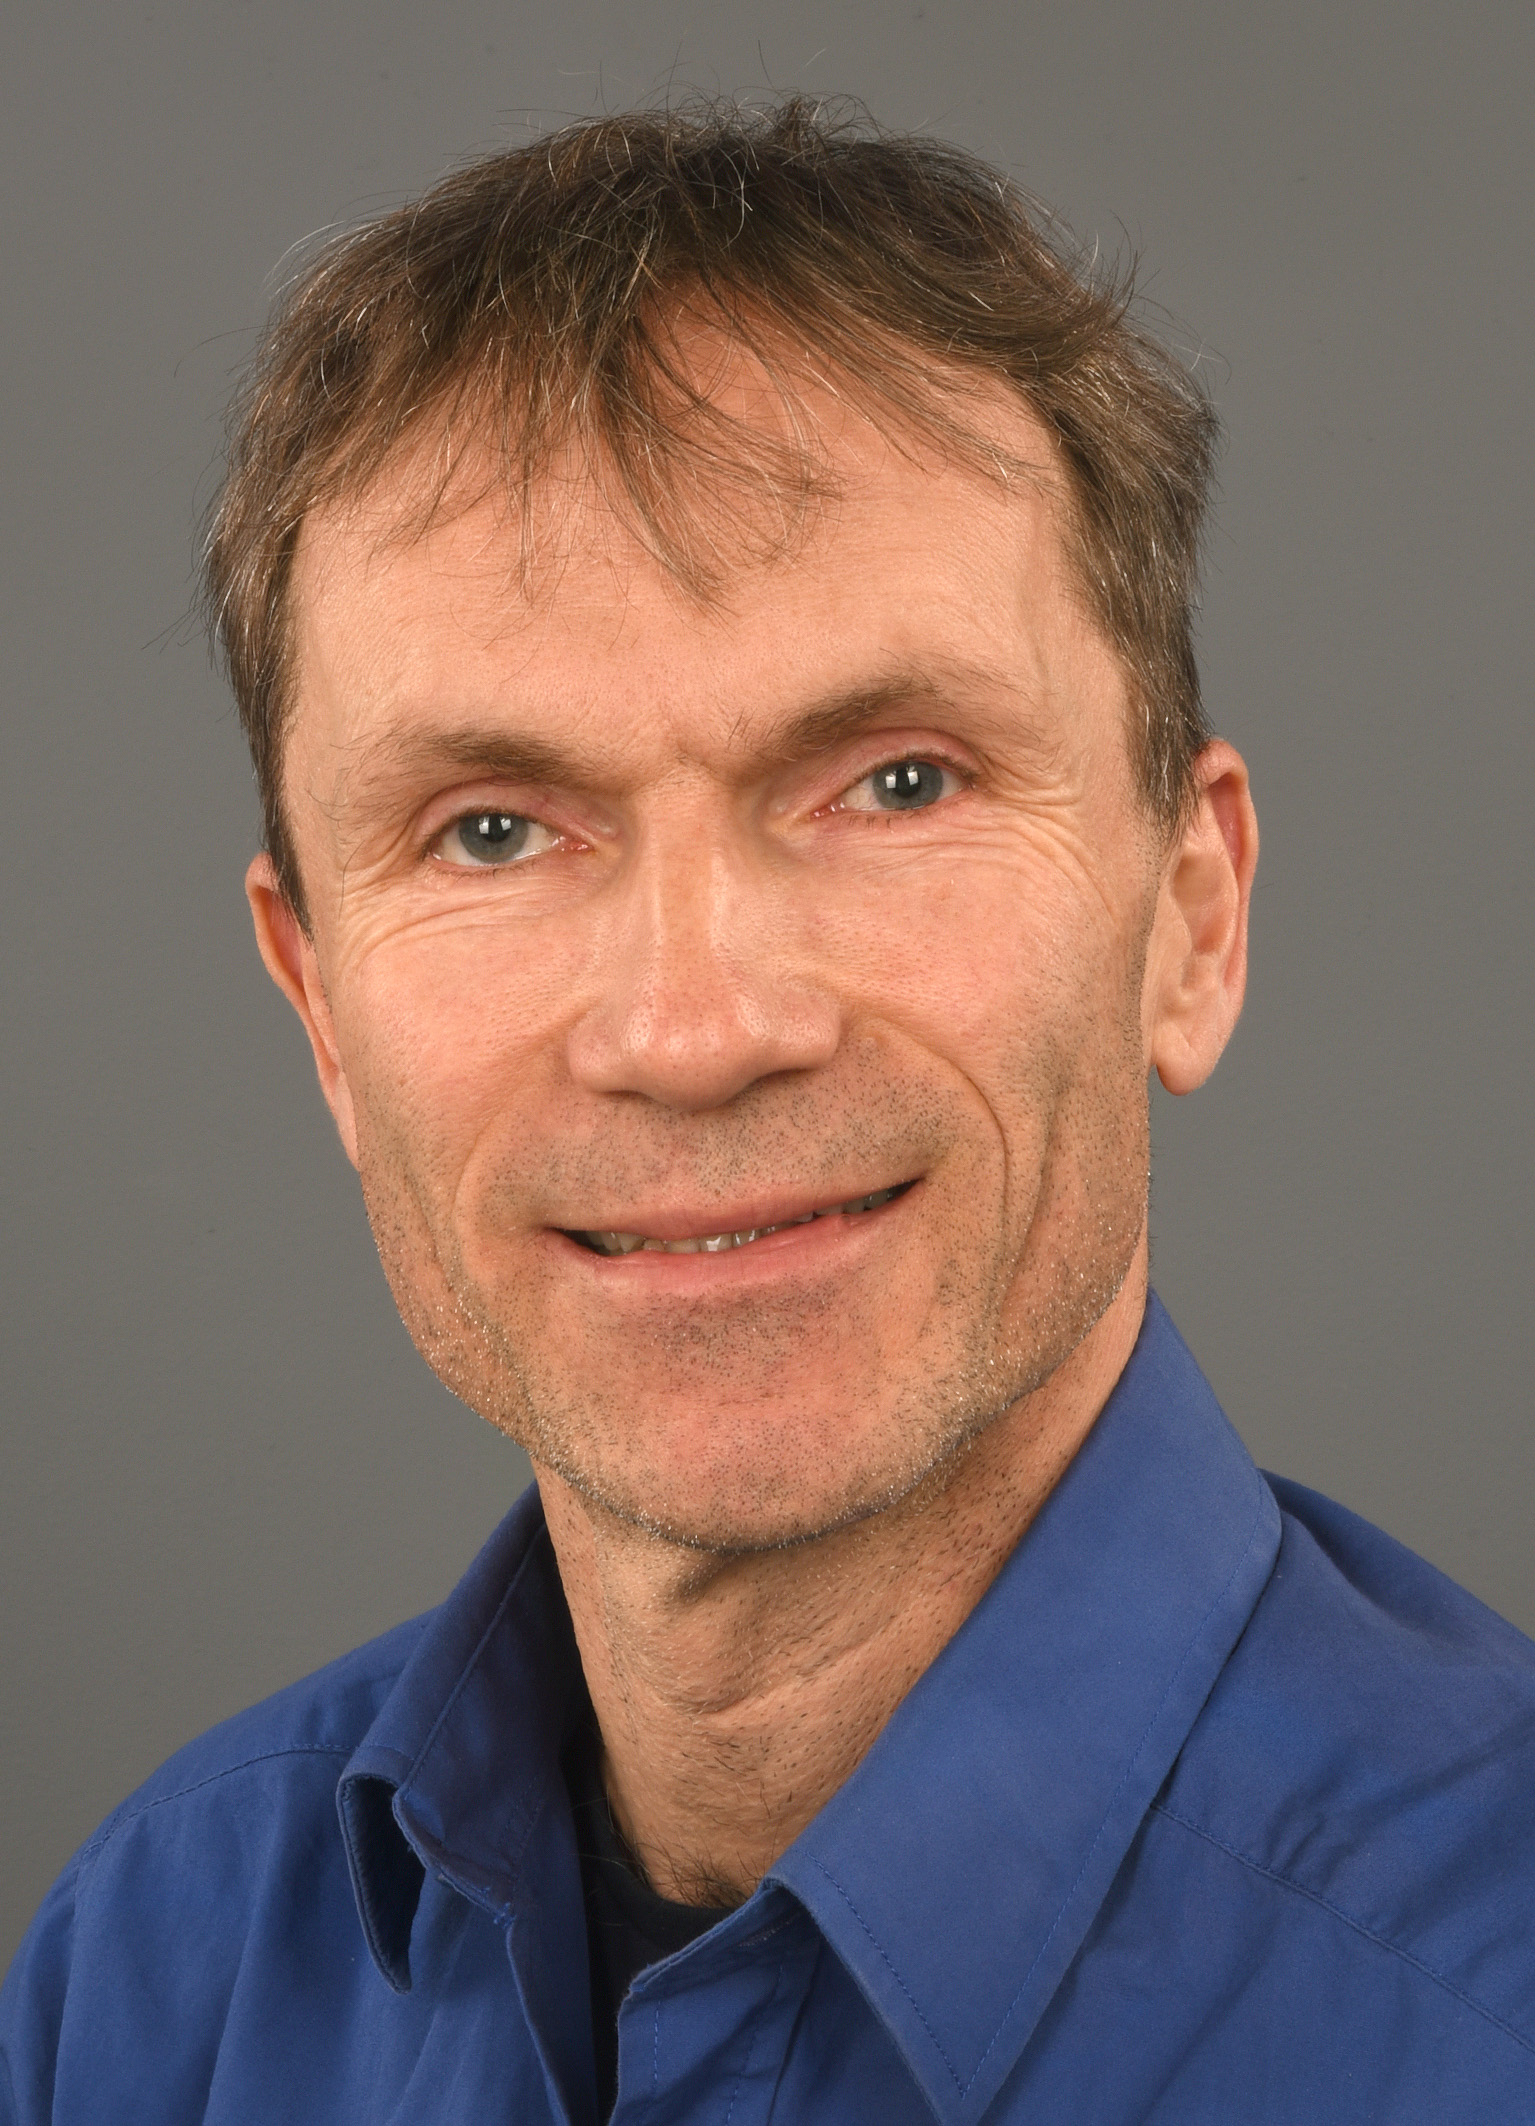 Dr. Paul Willems